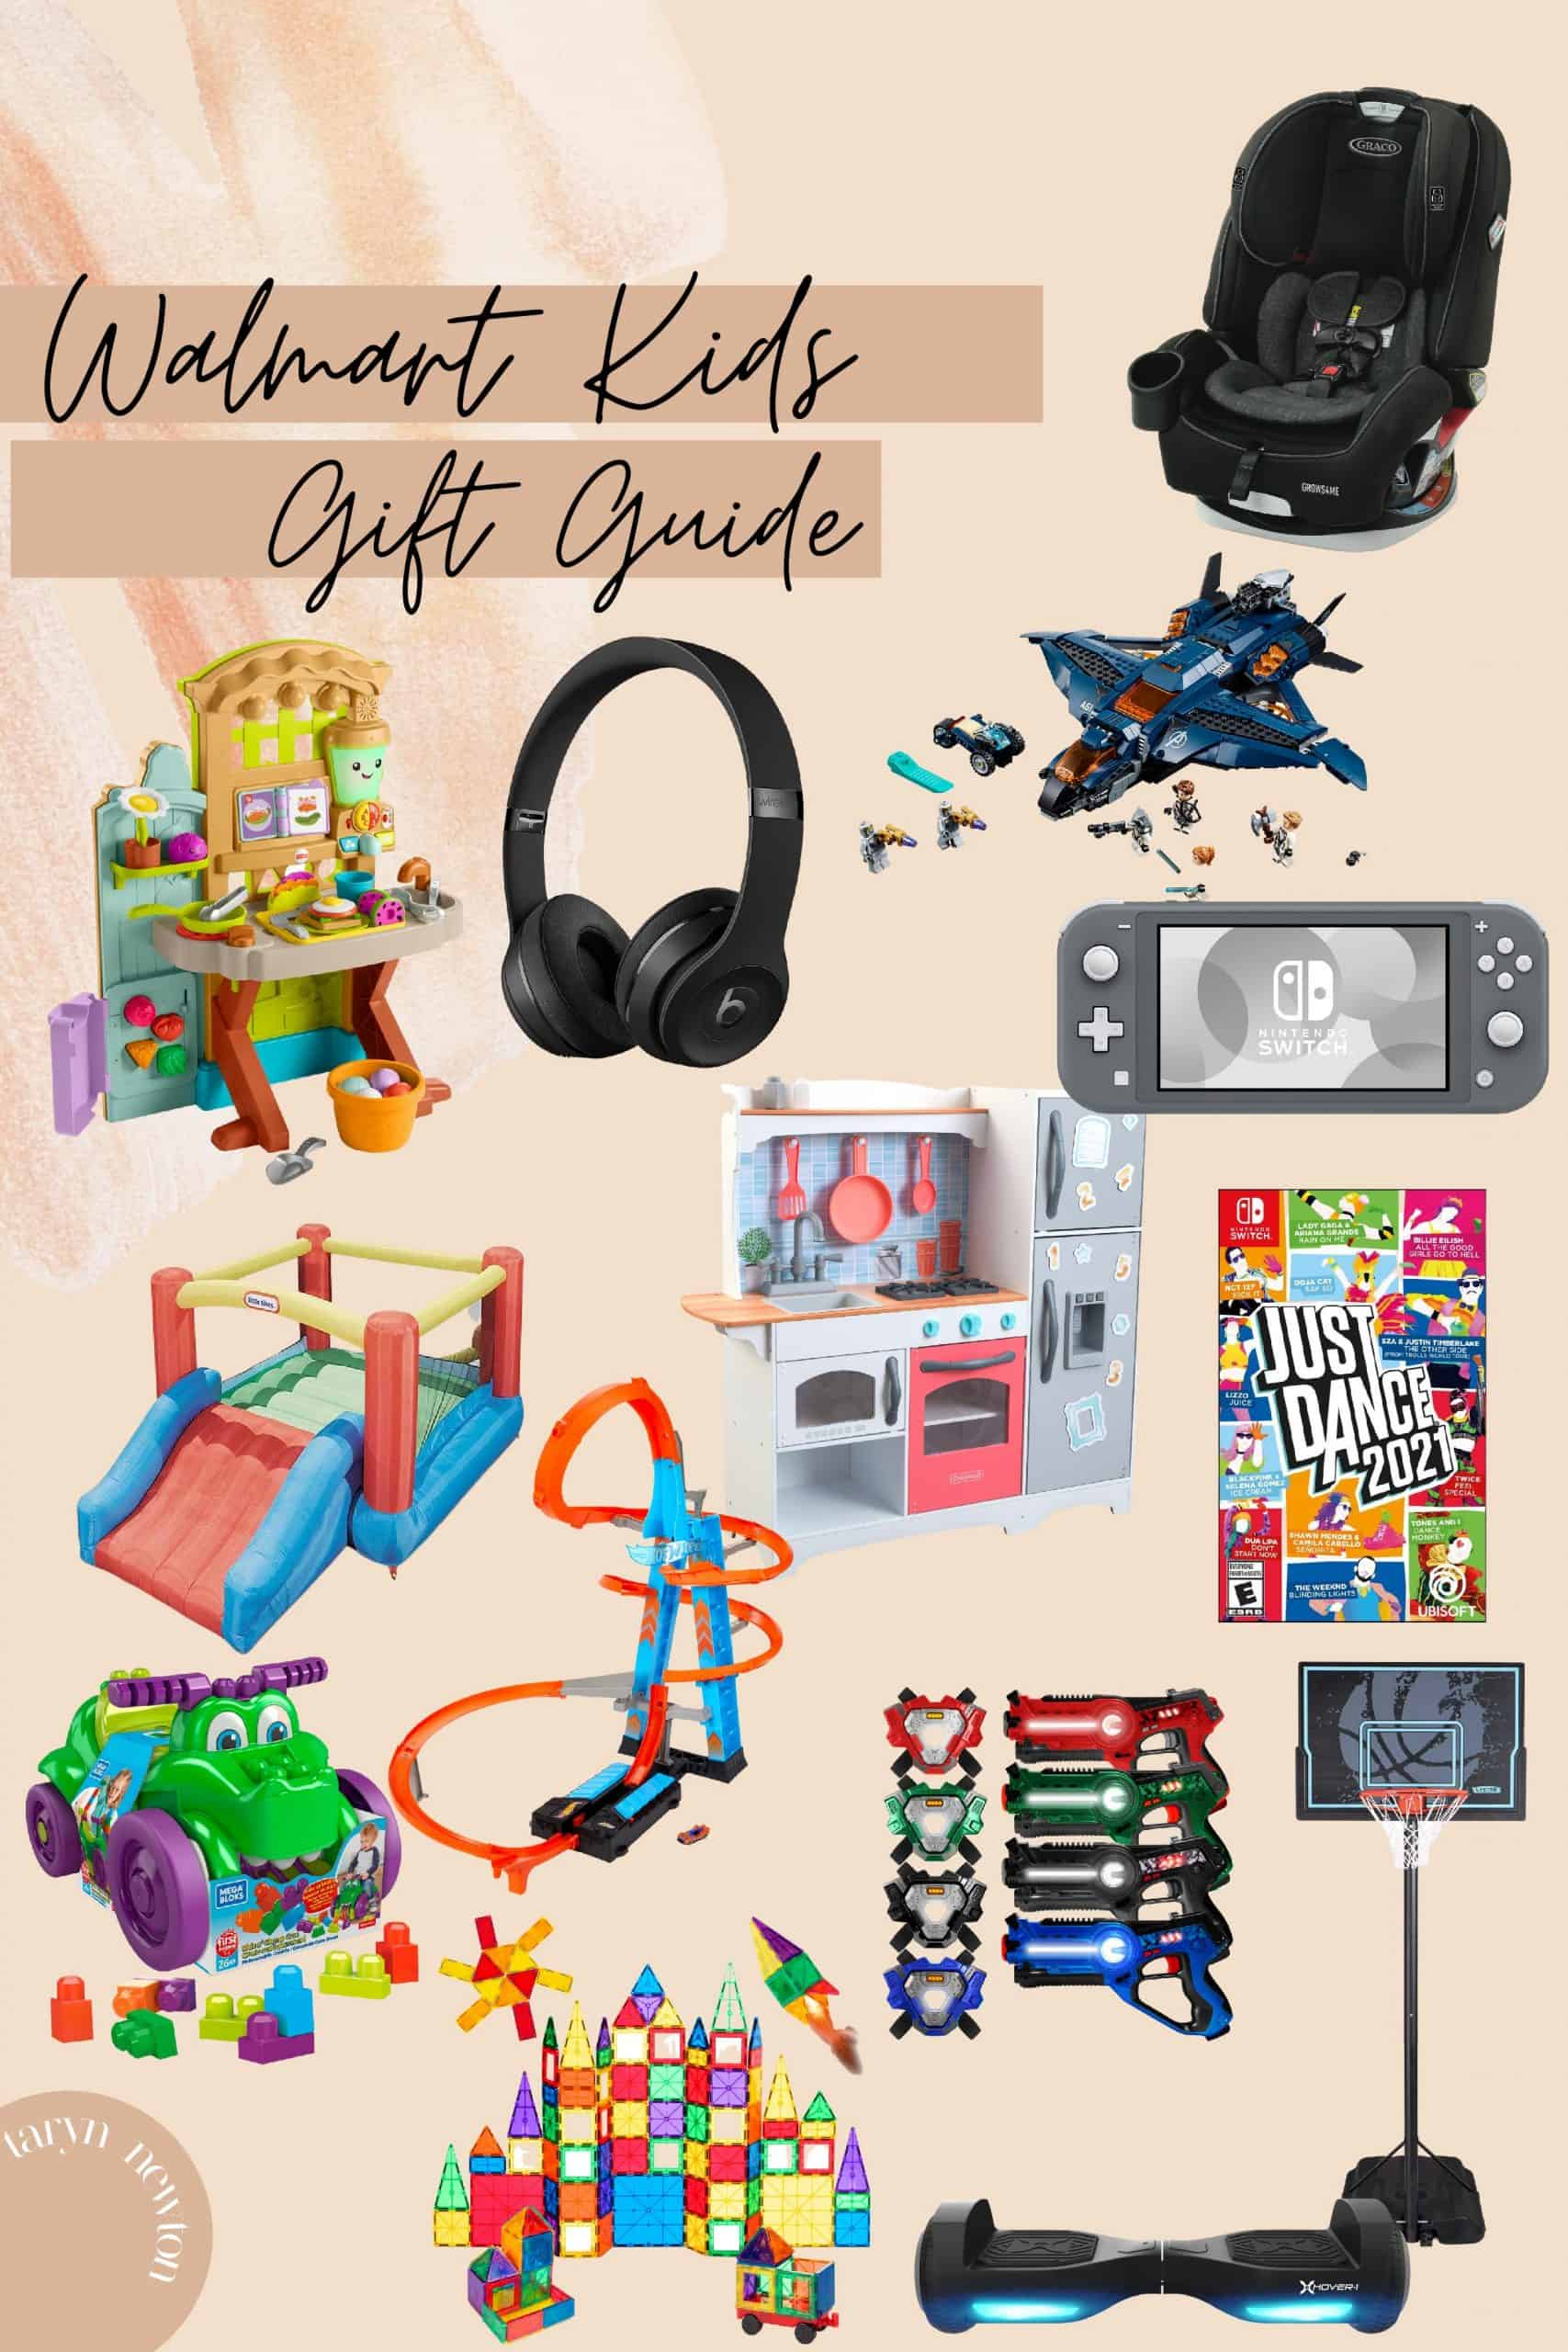 Best Deals at Walmart by popular Dallas life and style blog, Glamorous Versatility: collage image of a Graco carseat, inflatable bounce house, Hot Wheels track, hover board, magna tiles, Just Dance 2021, Nintendo switch, Basketball hoop, play kitchen, laser tag, bluetooth headphones, and Lego Marvel Avengers set.